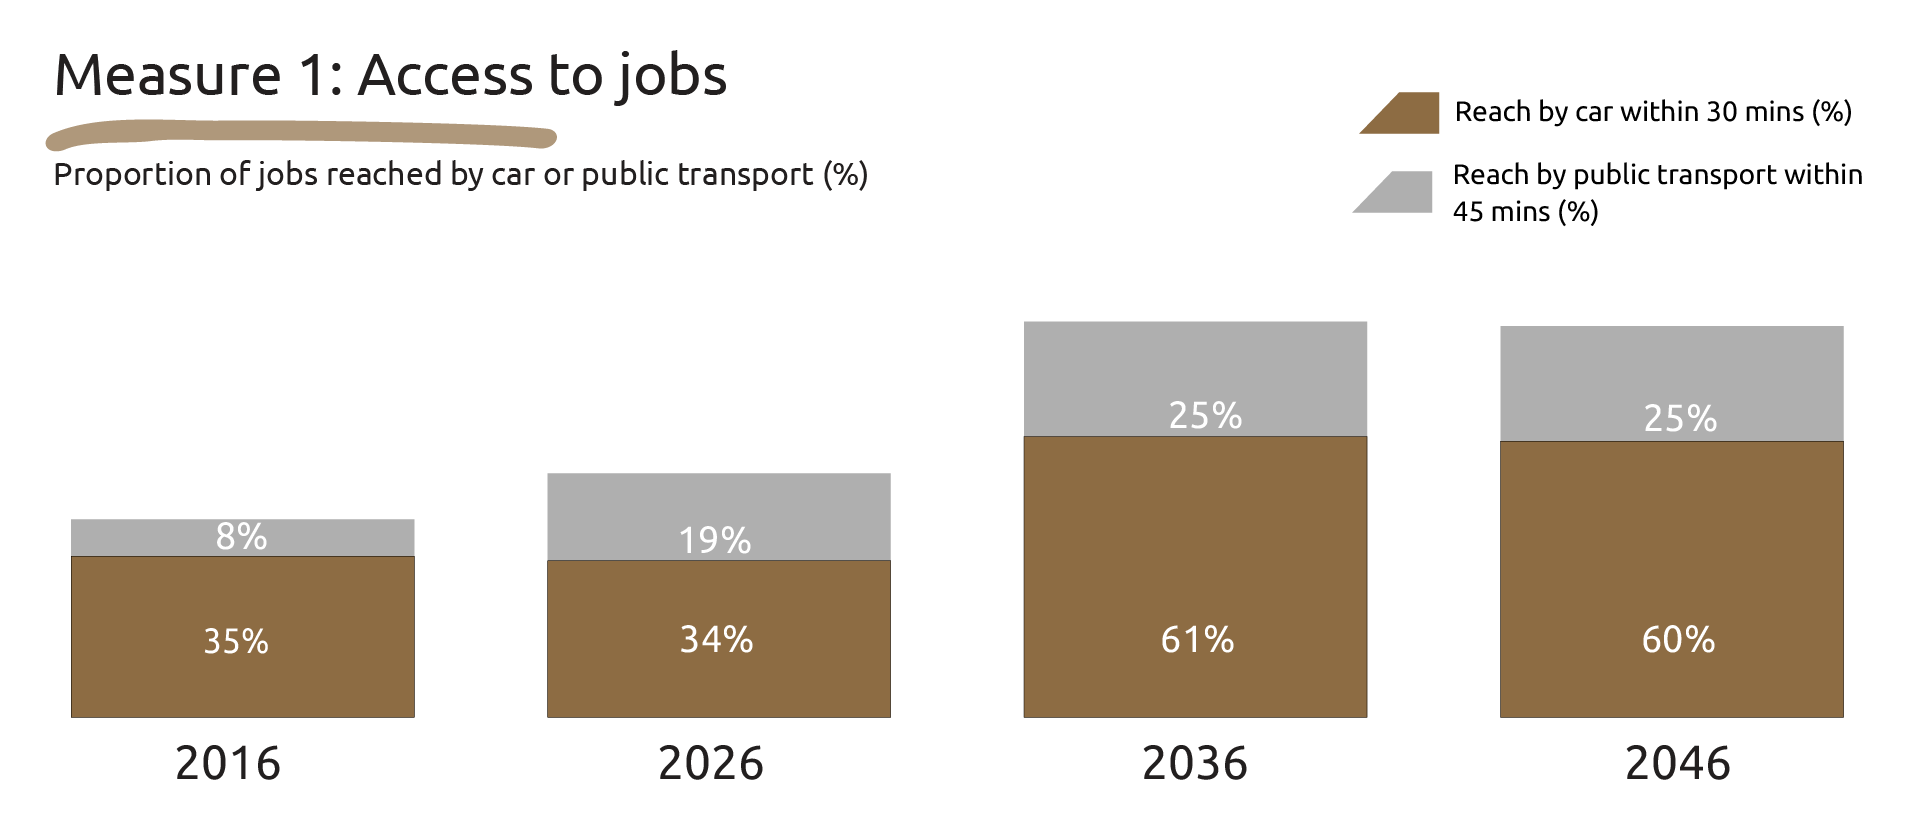 Graphic showing the proportion of jobs reached by car within 30 mins/public transport within 45 minutes: 2016 - 35 per cent/8 per cent, 2026 - 34 per cent/19 per cent, 2036 - 61 per cent/25 per cent and 2046 - 60 per cent/25 per cent.